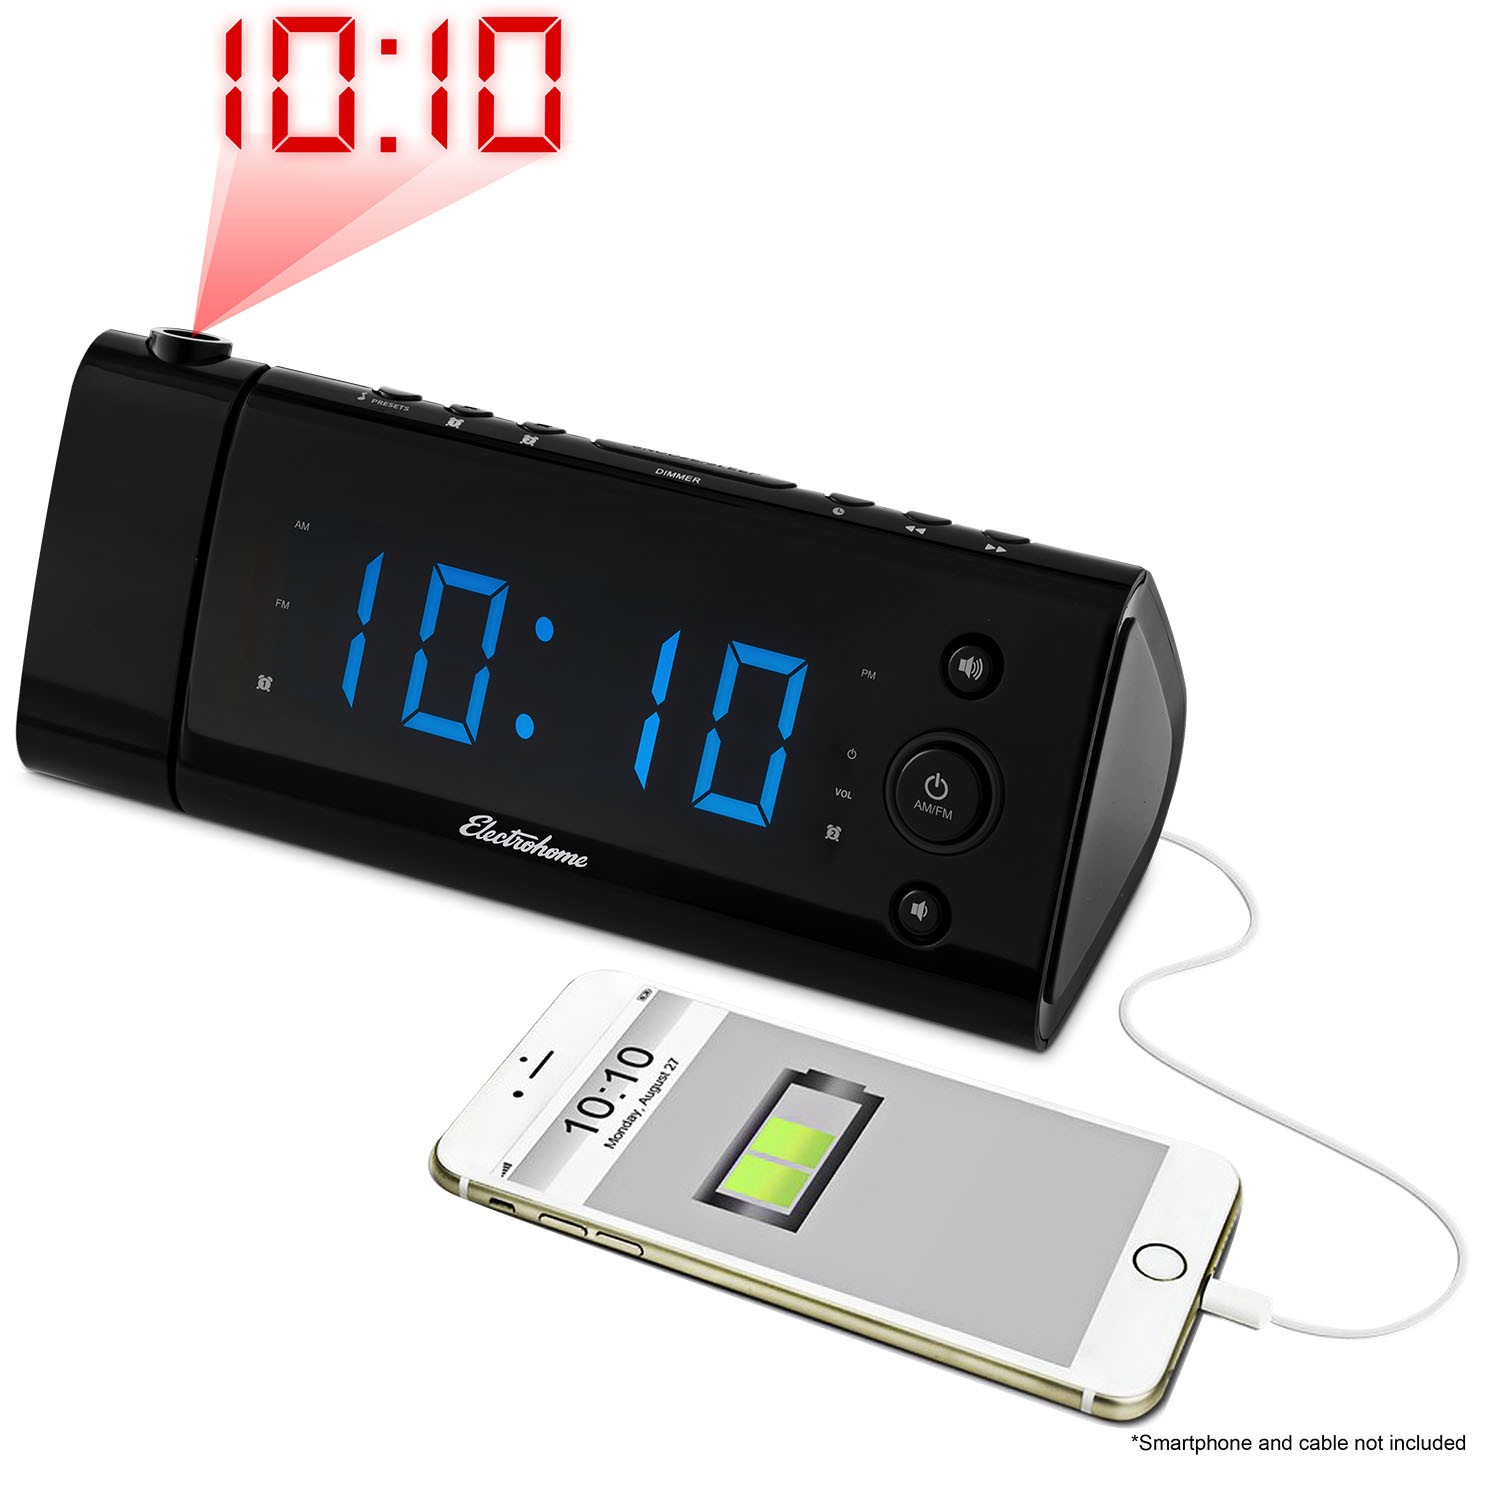 EAA475 Electrohome USB Charging Projection Alarm Clock Radio